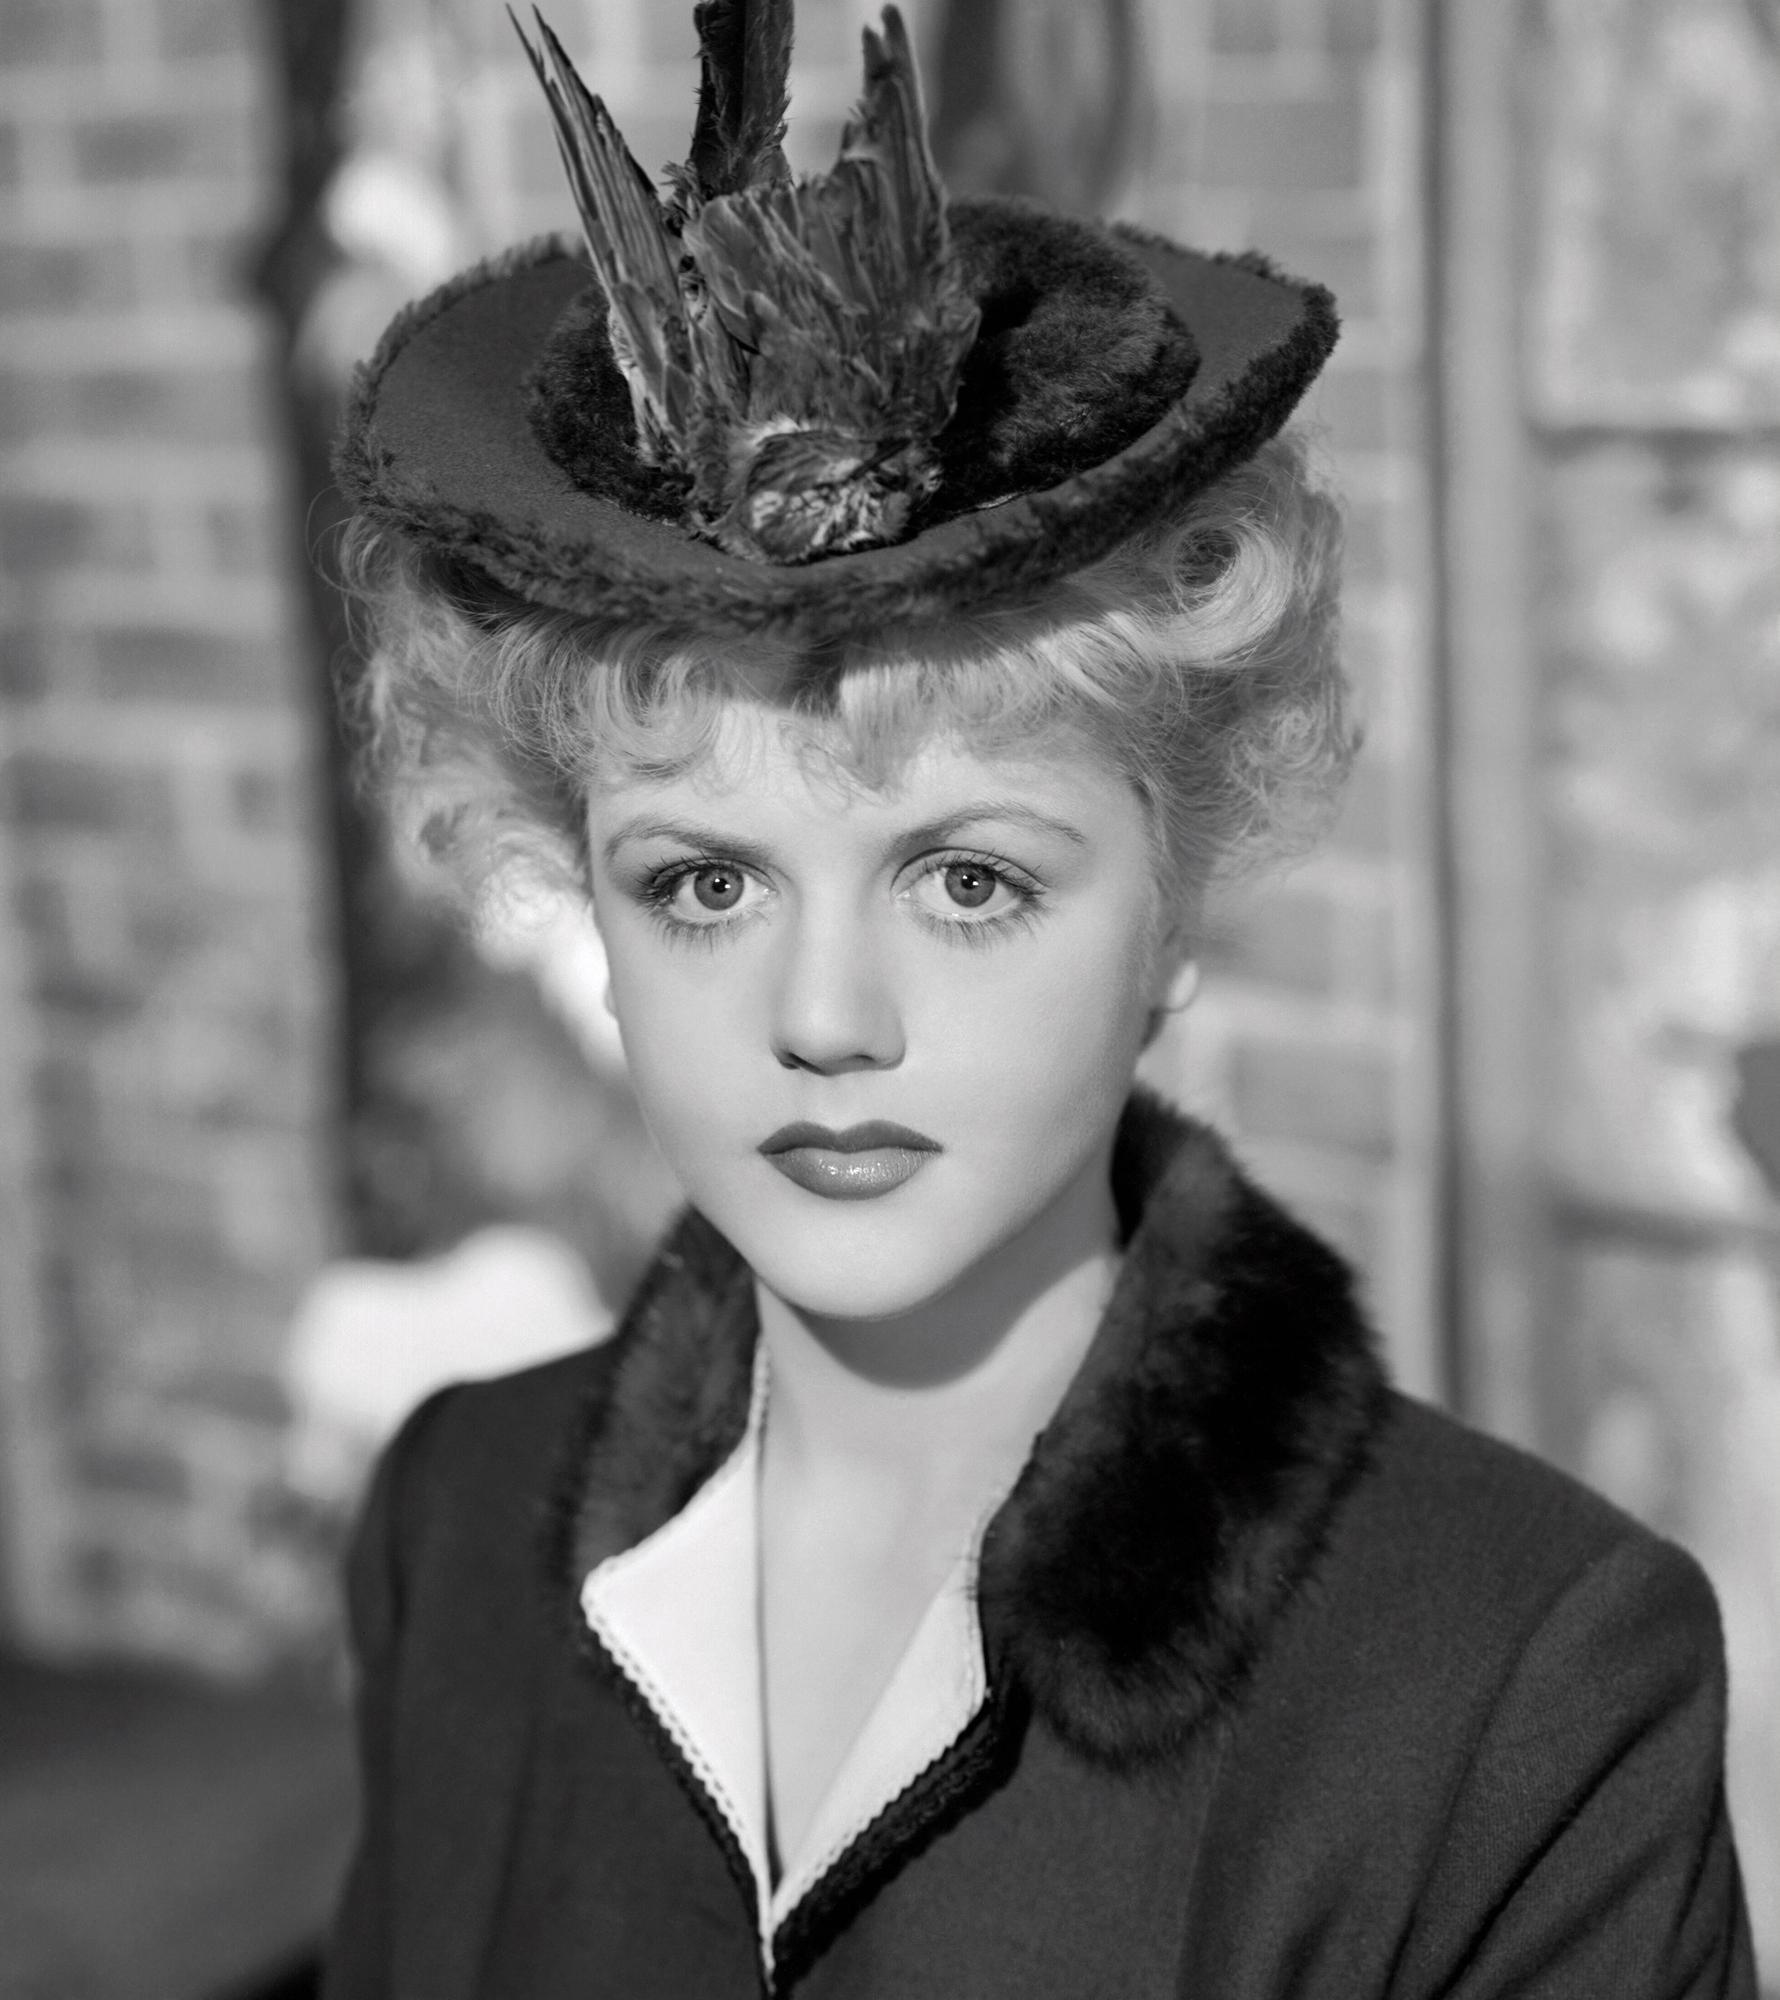 angela lansbury moviesangela lansbury 2017, angela lansbury young, angela lansbury gif, angela lansbury - beauty and the beast, angela lansbury car, angela lansbury nanny mcphee, angela lansbury fan mail, angela lansbury game of thrones, angela lansbury address, angela lansbury movies, angela lansbury beaty and the beast, angela lansbury interview, angela lansbury mrs lovett, angela lansbury youtube, angela lansbury astrotheme, angela lansbury new york, angela lansbury workout video, angela lansbury 2016, angela lansbury beauty and the beast перевод, angela lansbury twitter